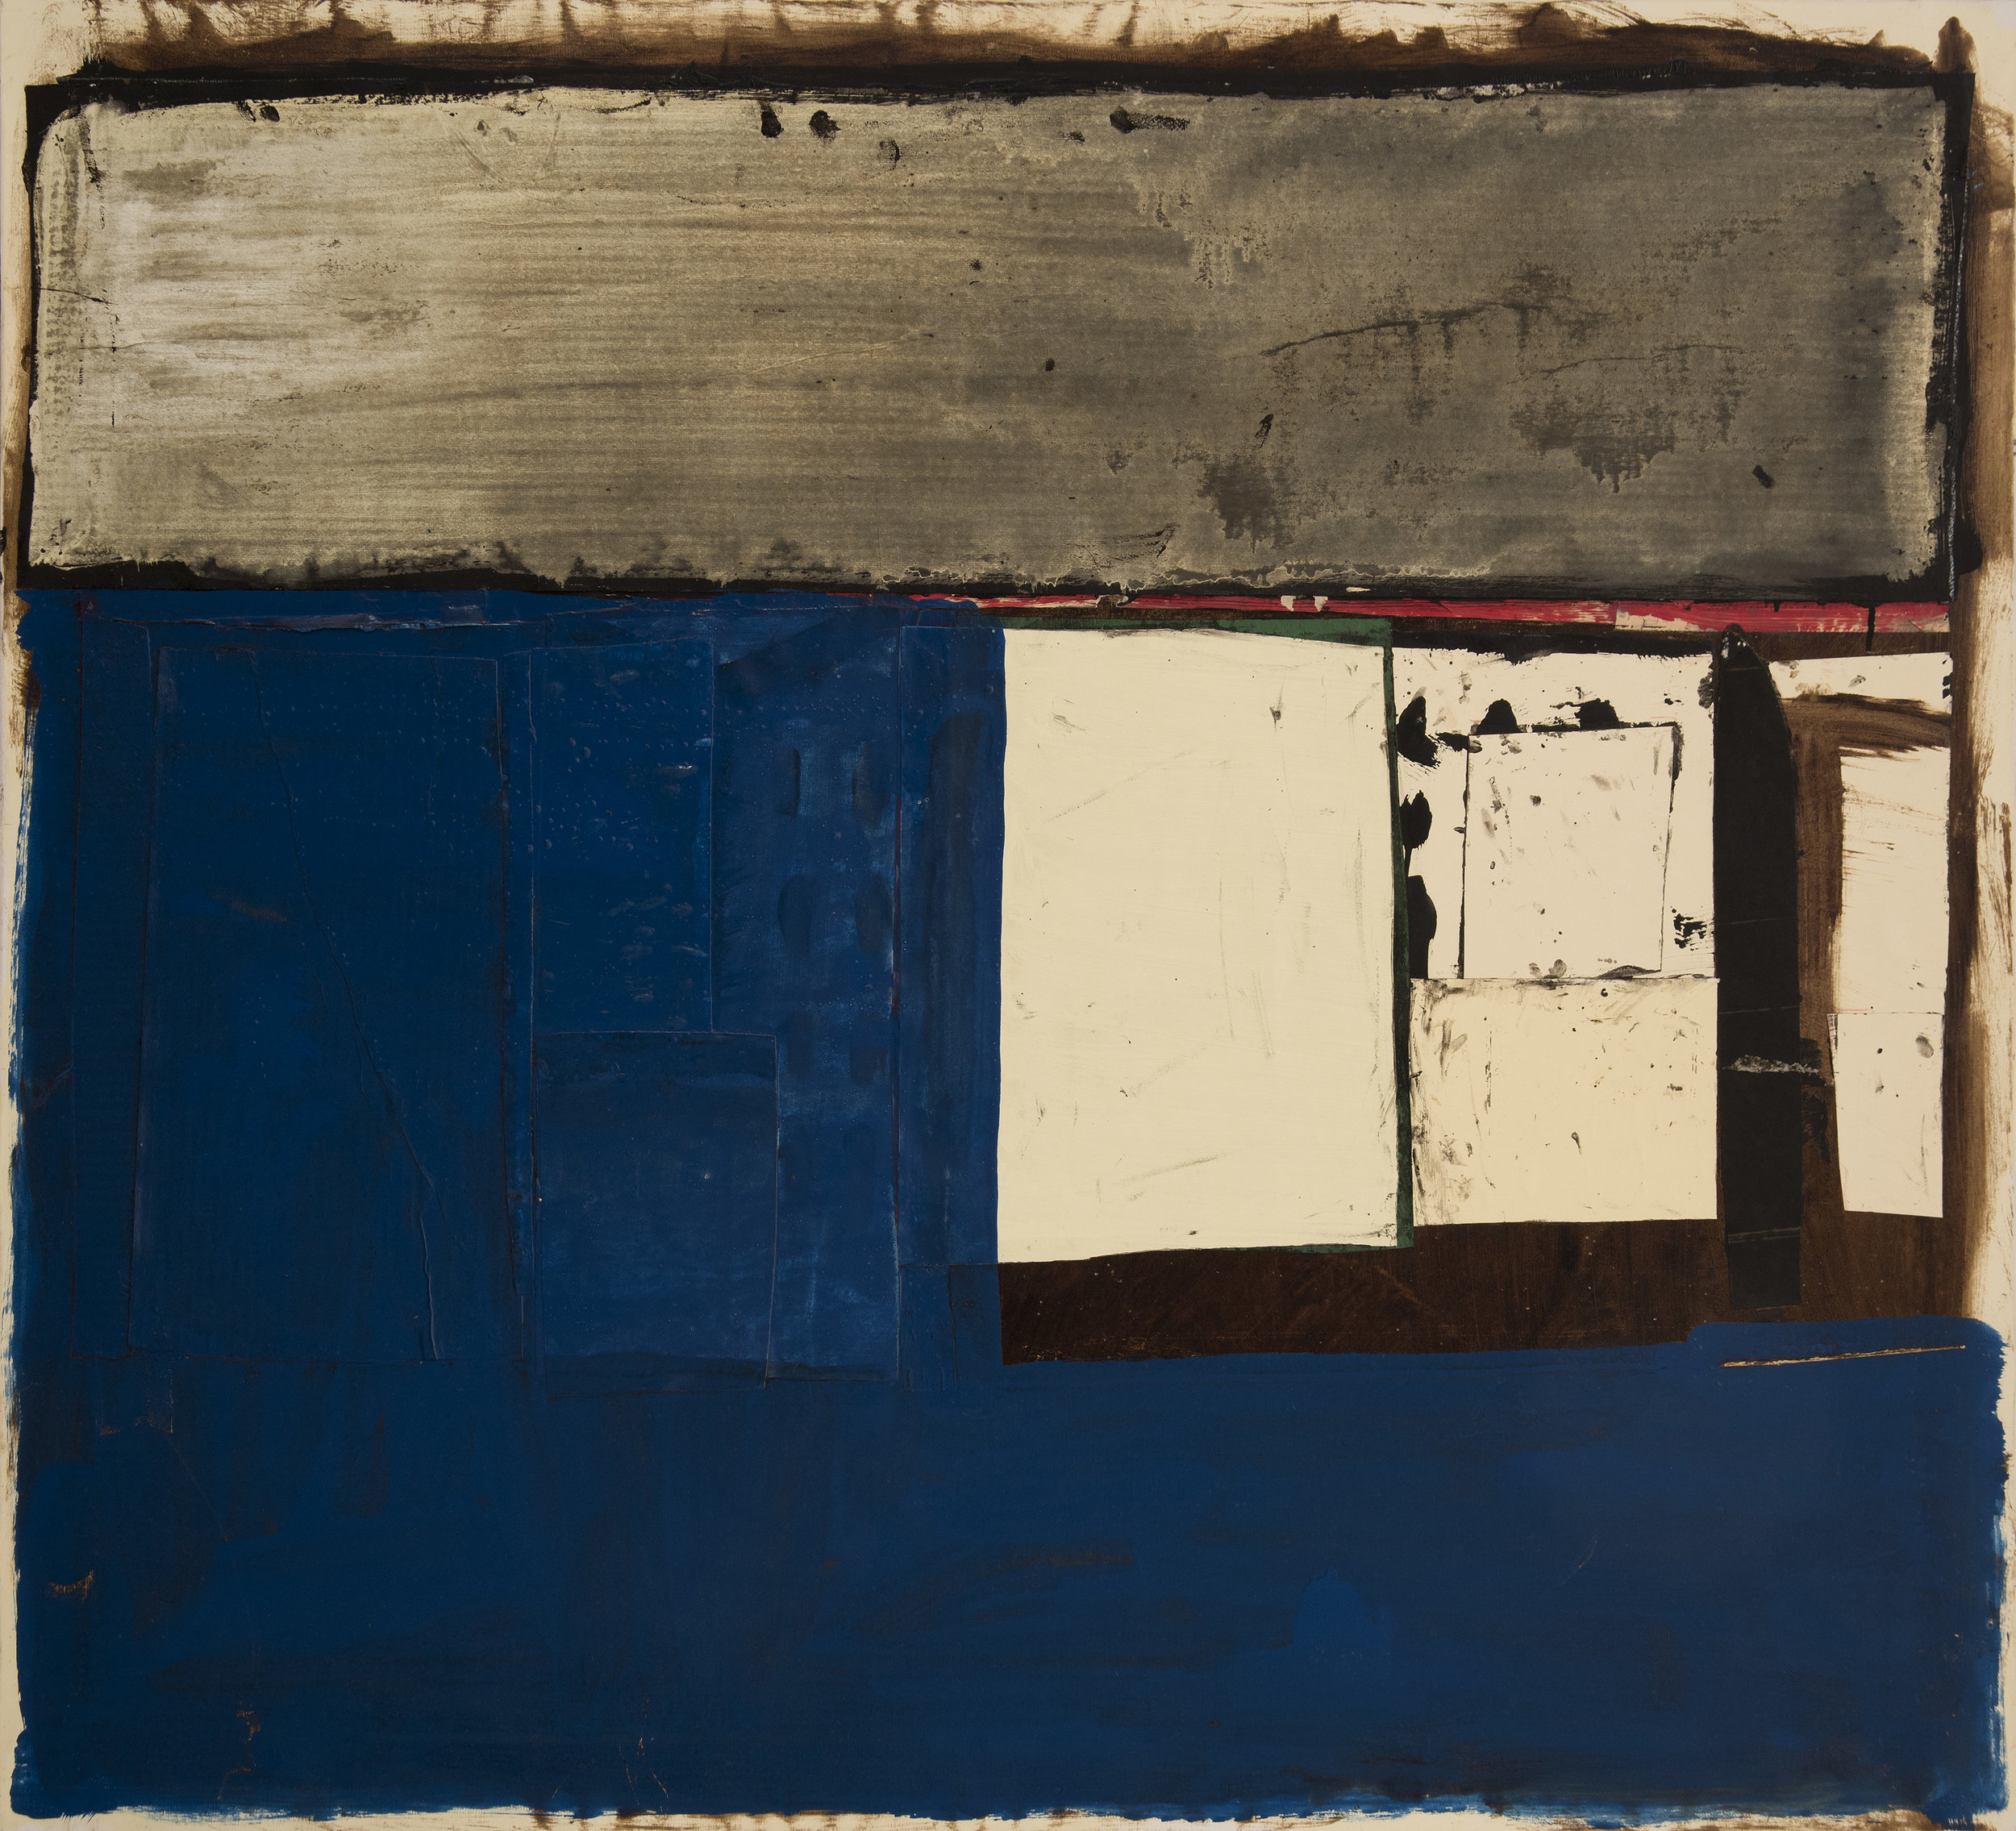 Conrad Marca-Relli ,  Untitled 1993 , mixed media collage on canvas, 48 x 53 inches